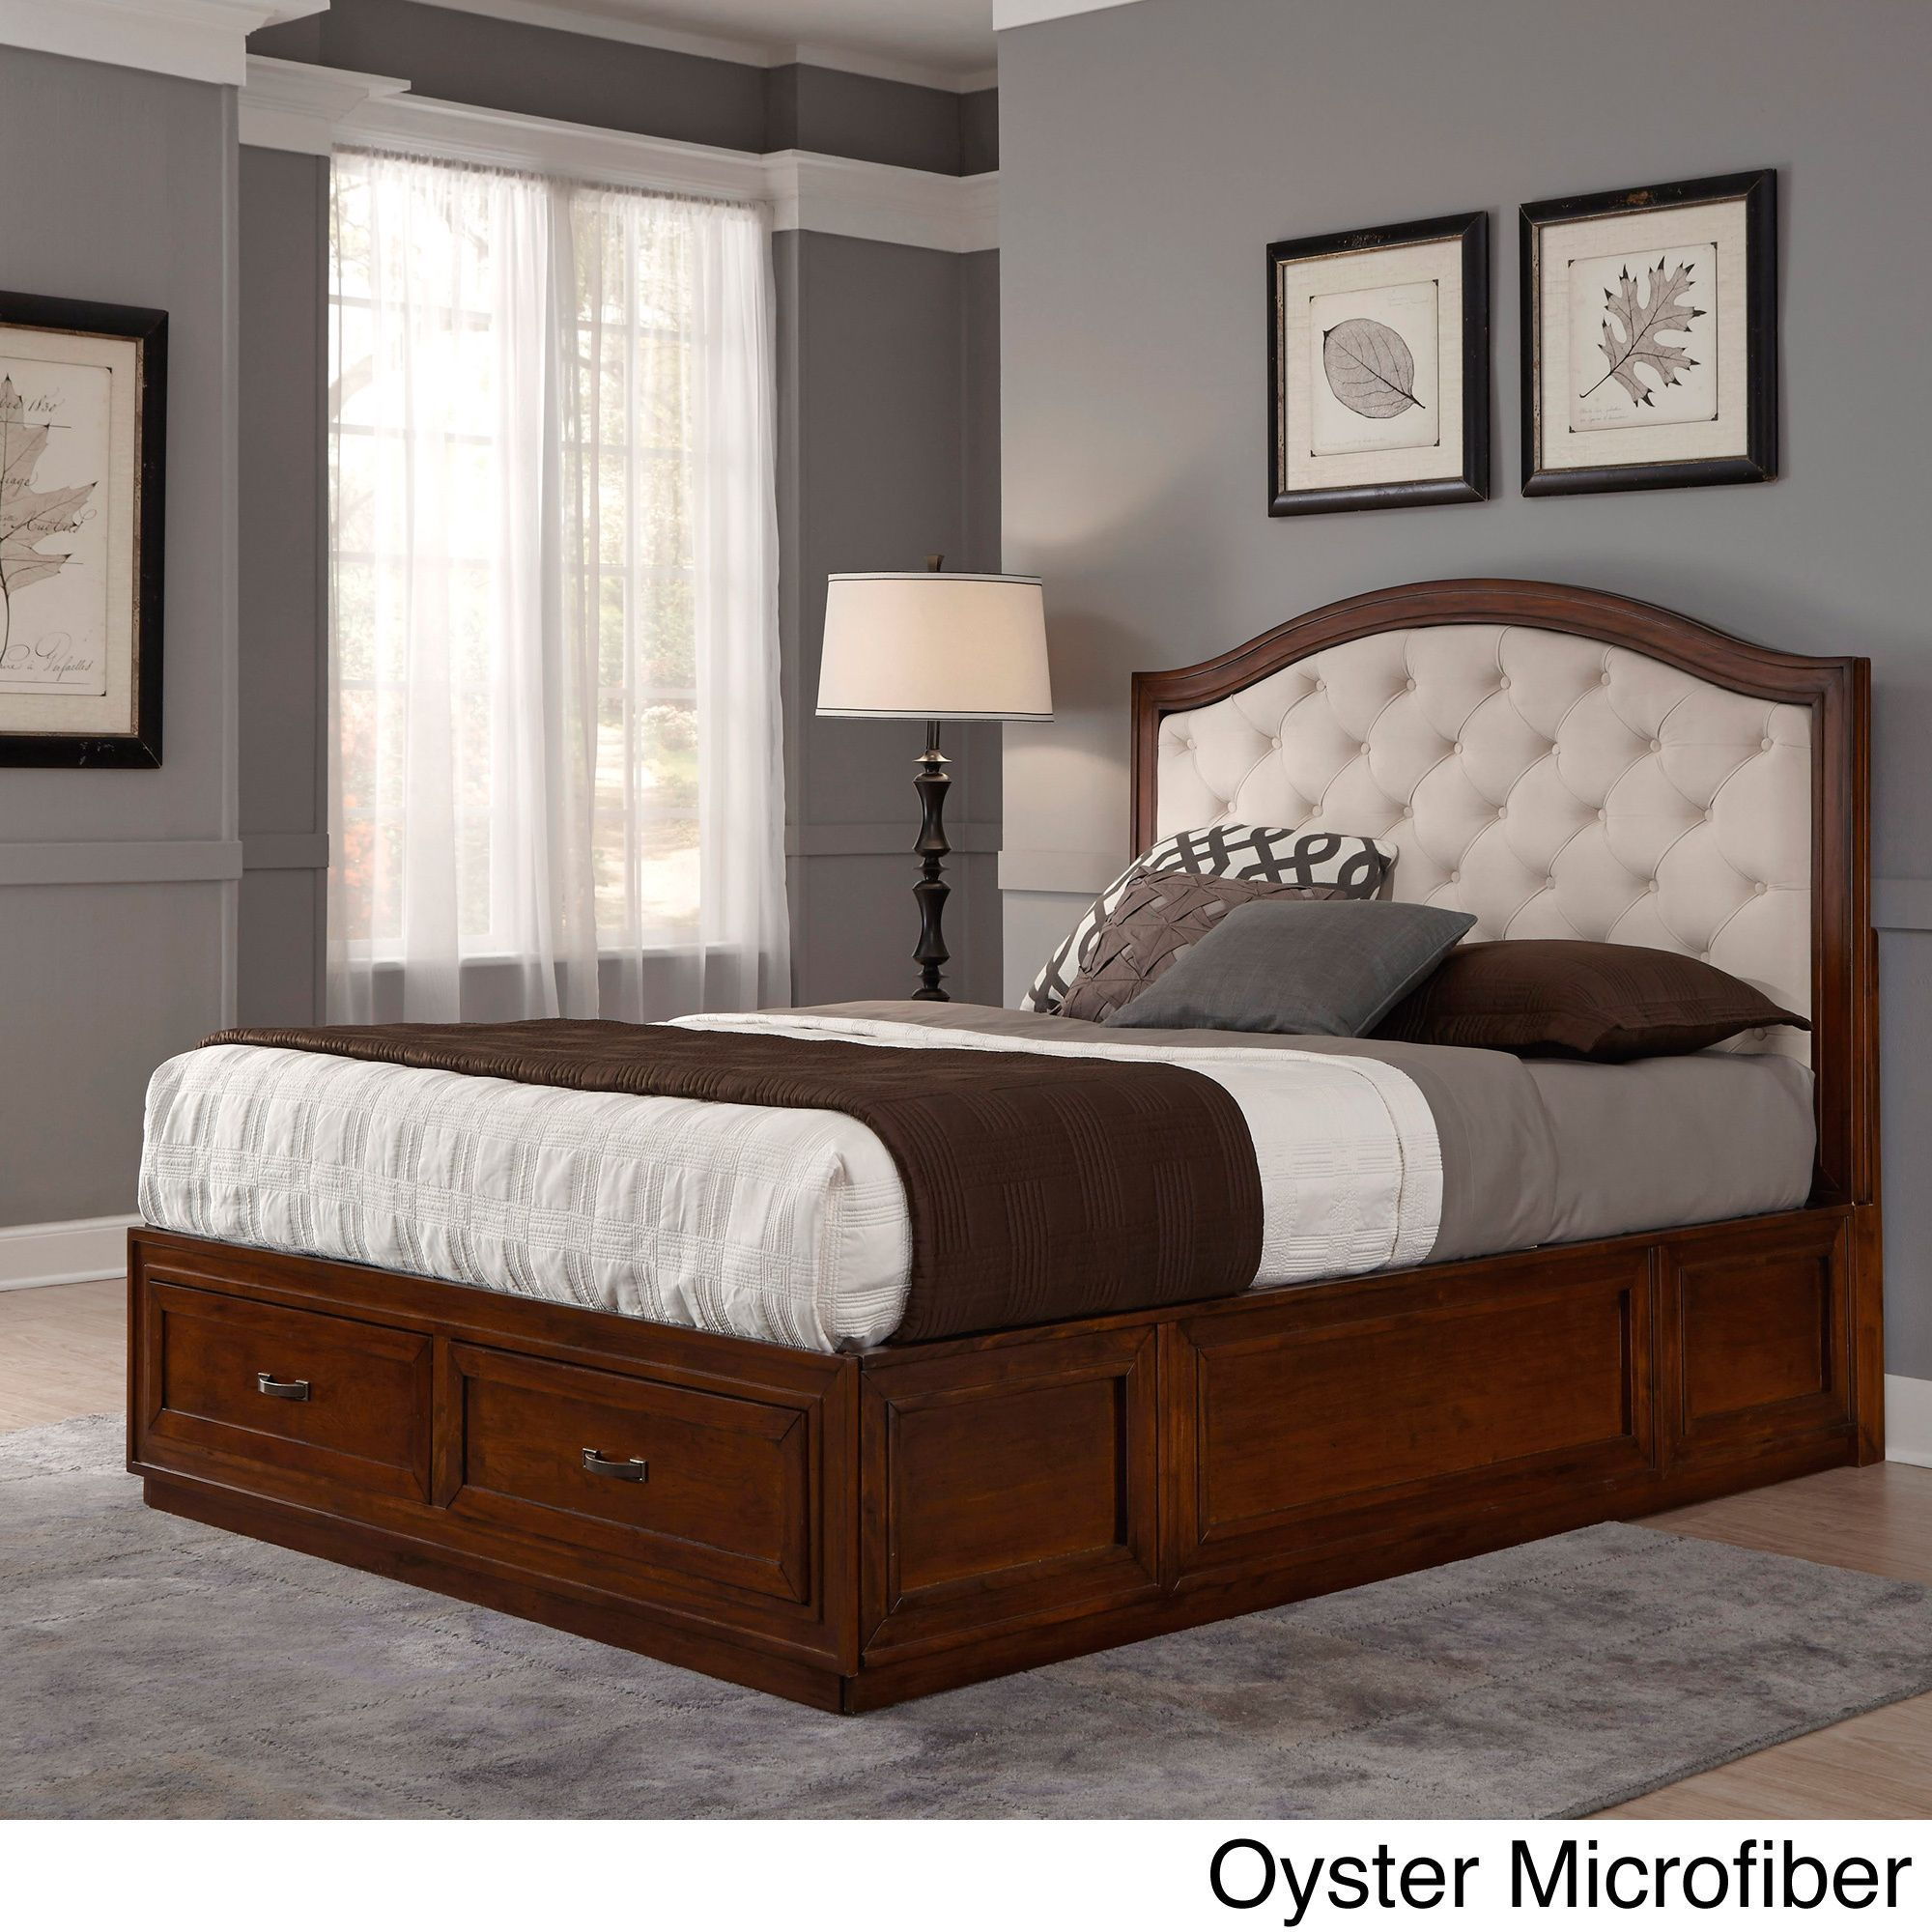 Duet king diamondtufted platform storage bed by home styles brown